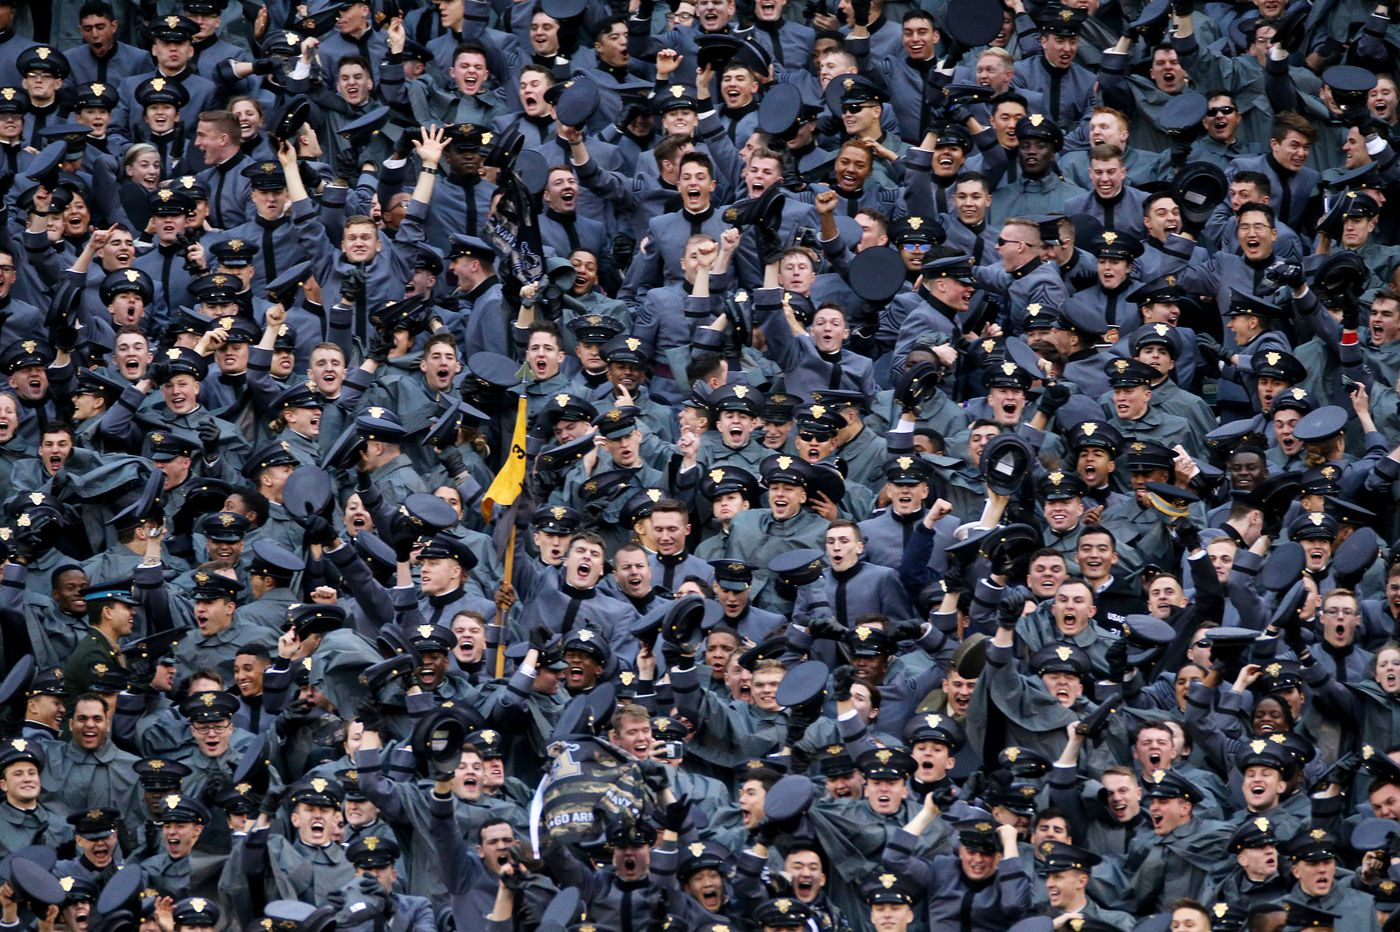 West Point investigates cadets' hand symbol with possible links to white power at Army-Navy 'College GameDay' show